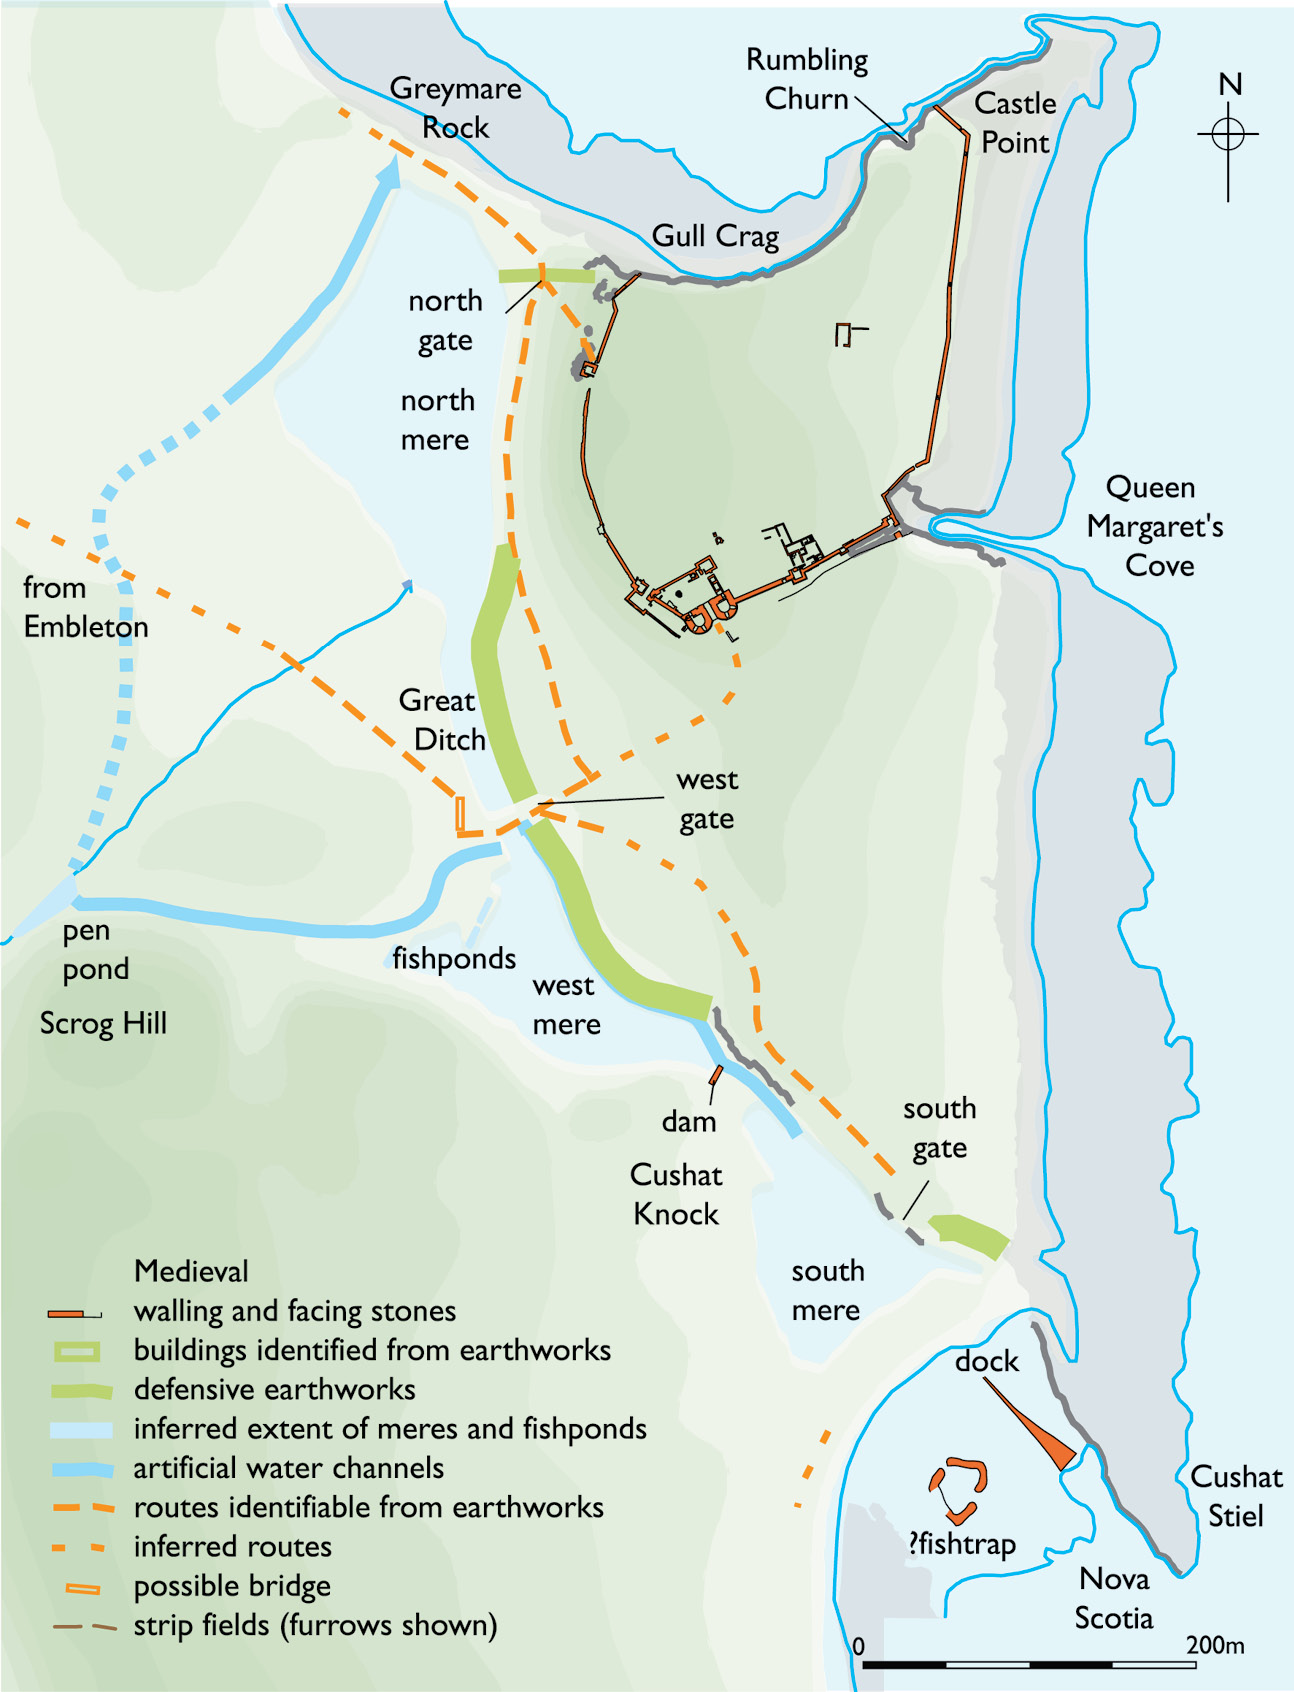 above An English Heritage survey of 2006, carried out by Alastair Oswald, revealed that the western approach to the castle at Dunstanburgh was marked by a line of spring-fed meres that enhanced the aesthetic effect.